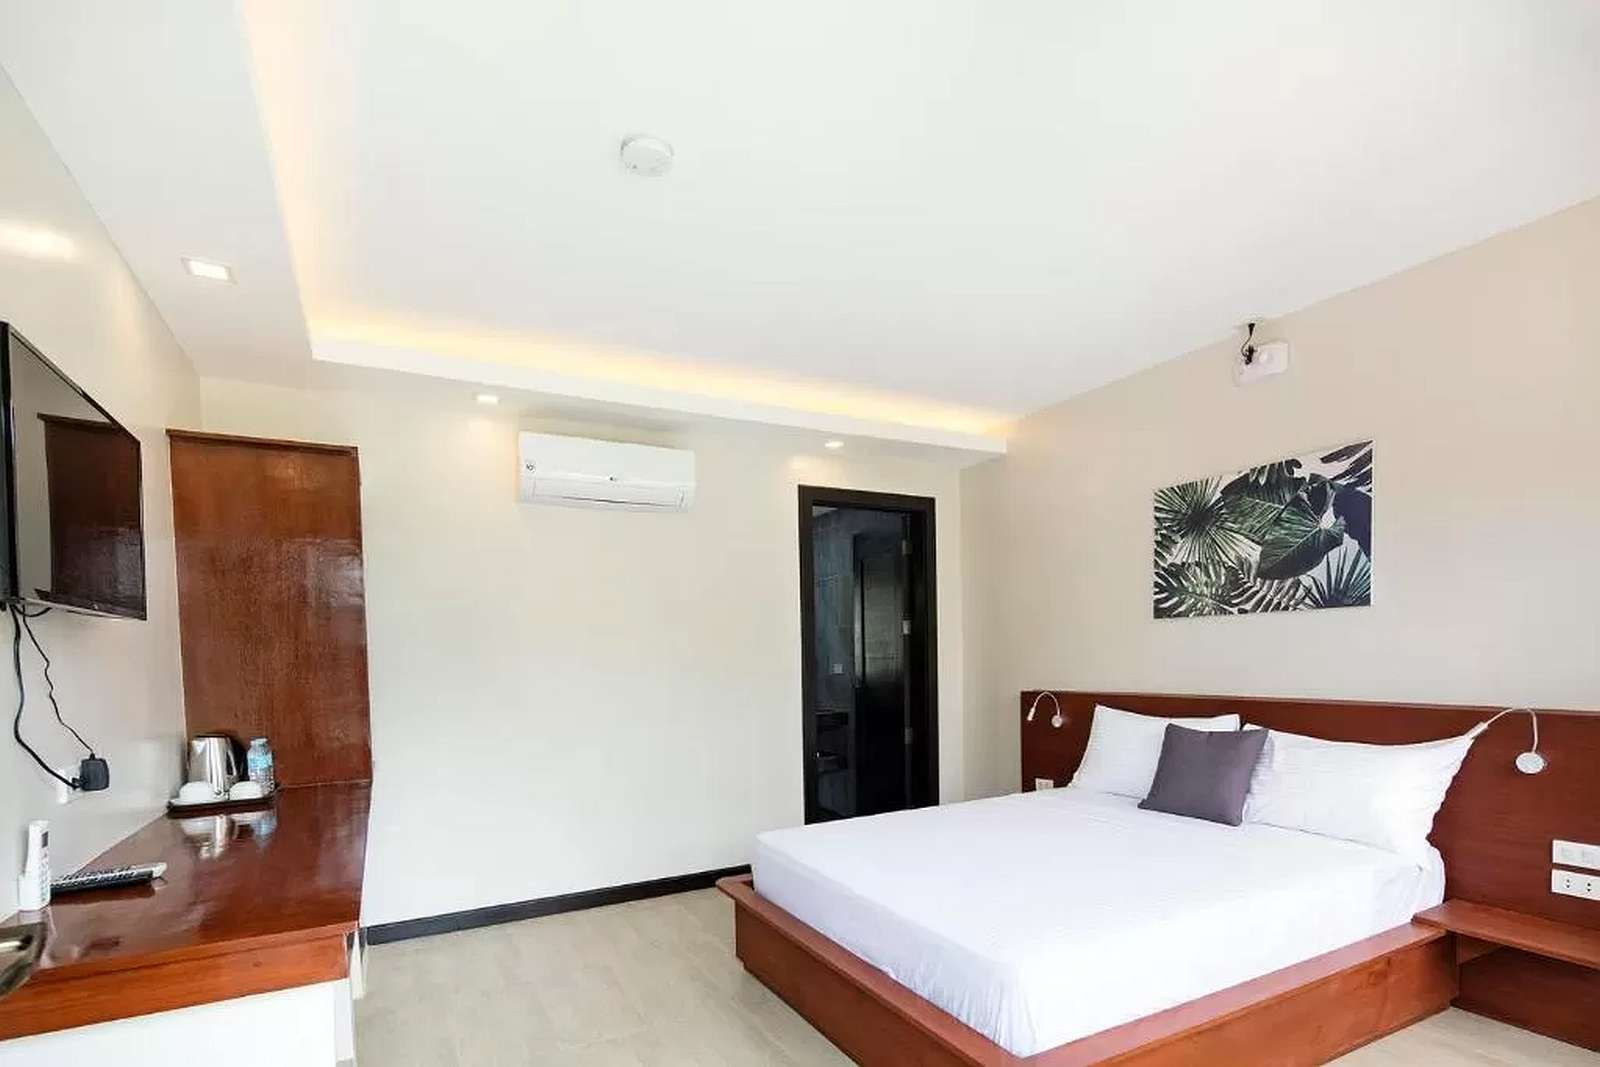 Ohana panglao resort bohol book here for discount rates (2)